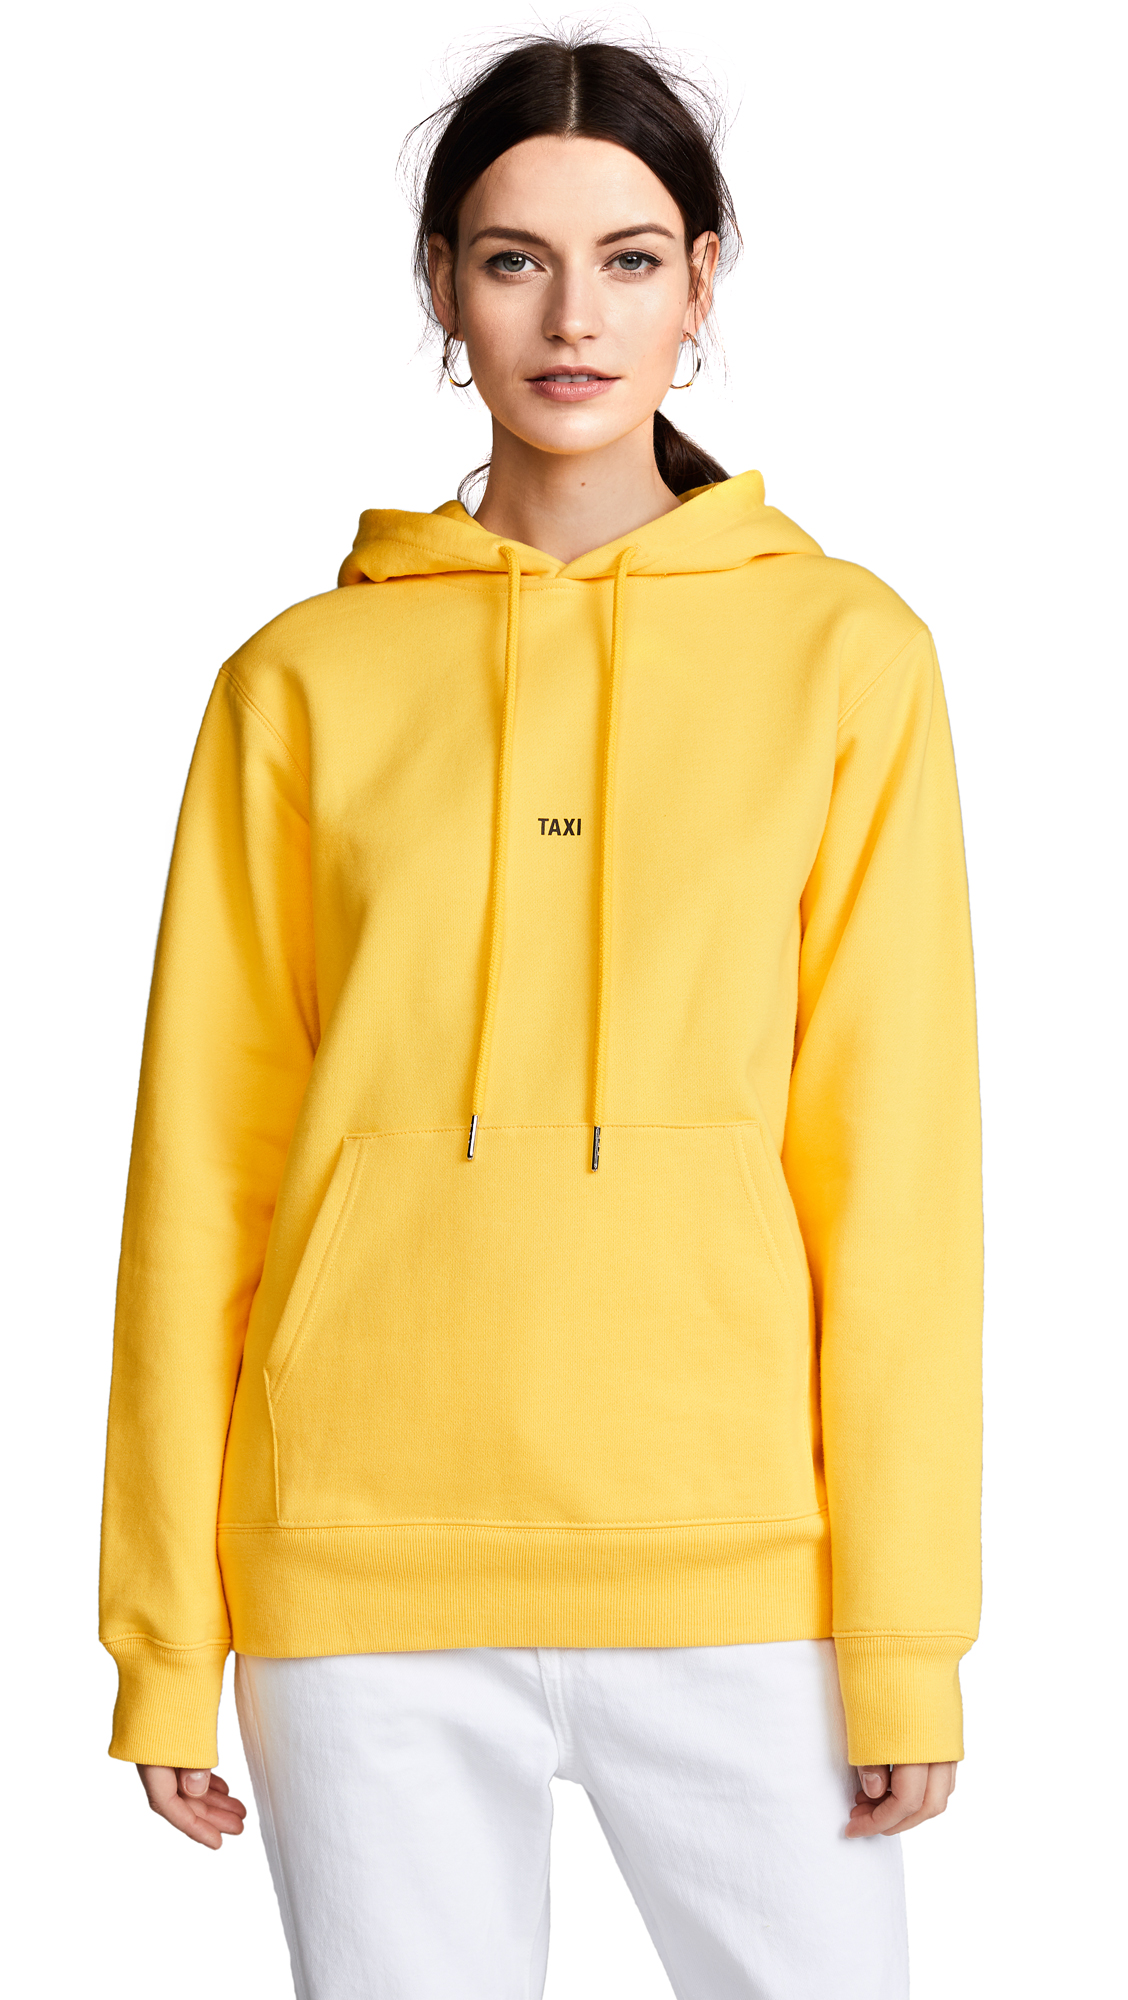 Helmut Lang Taxi Hoodie In Yellow